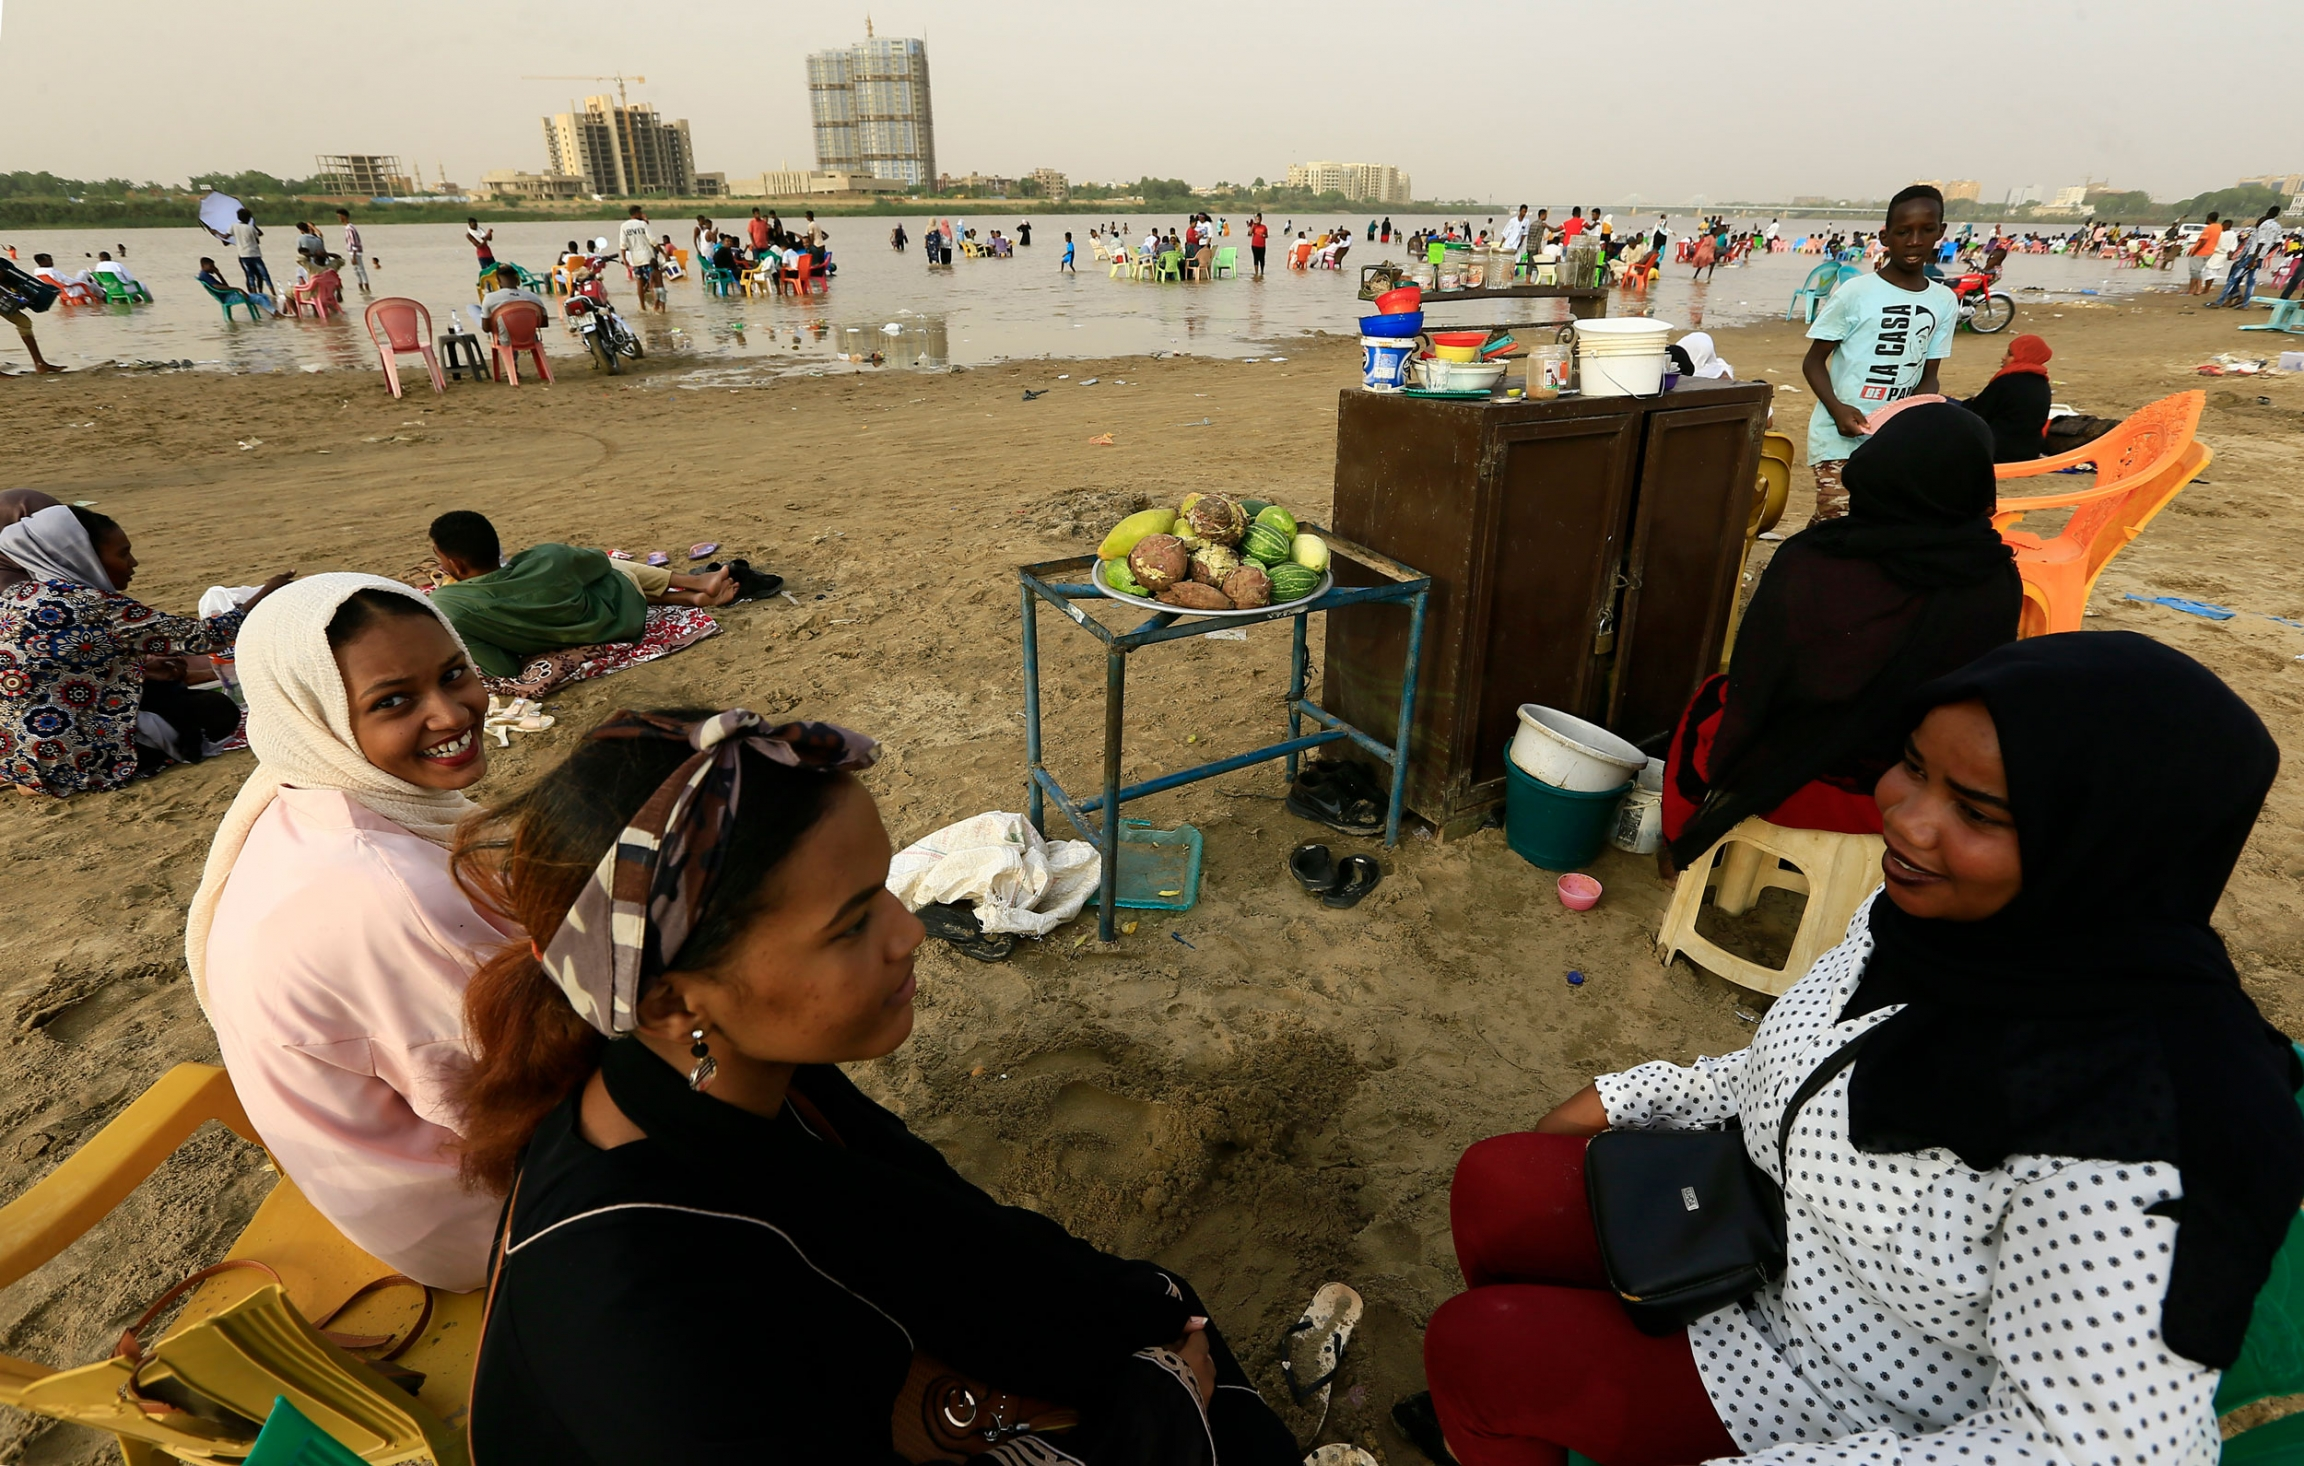 A group of three women are shown sitting with food nearby and the Nile River in the distance.